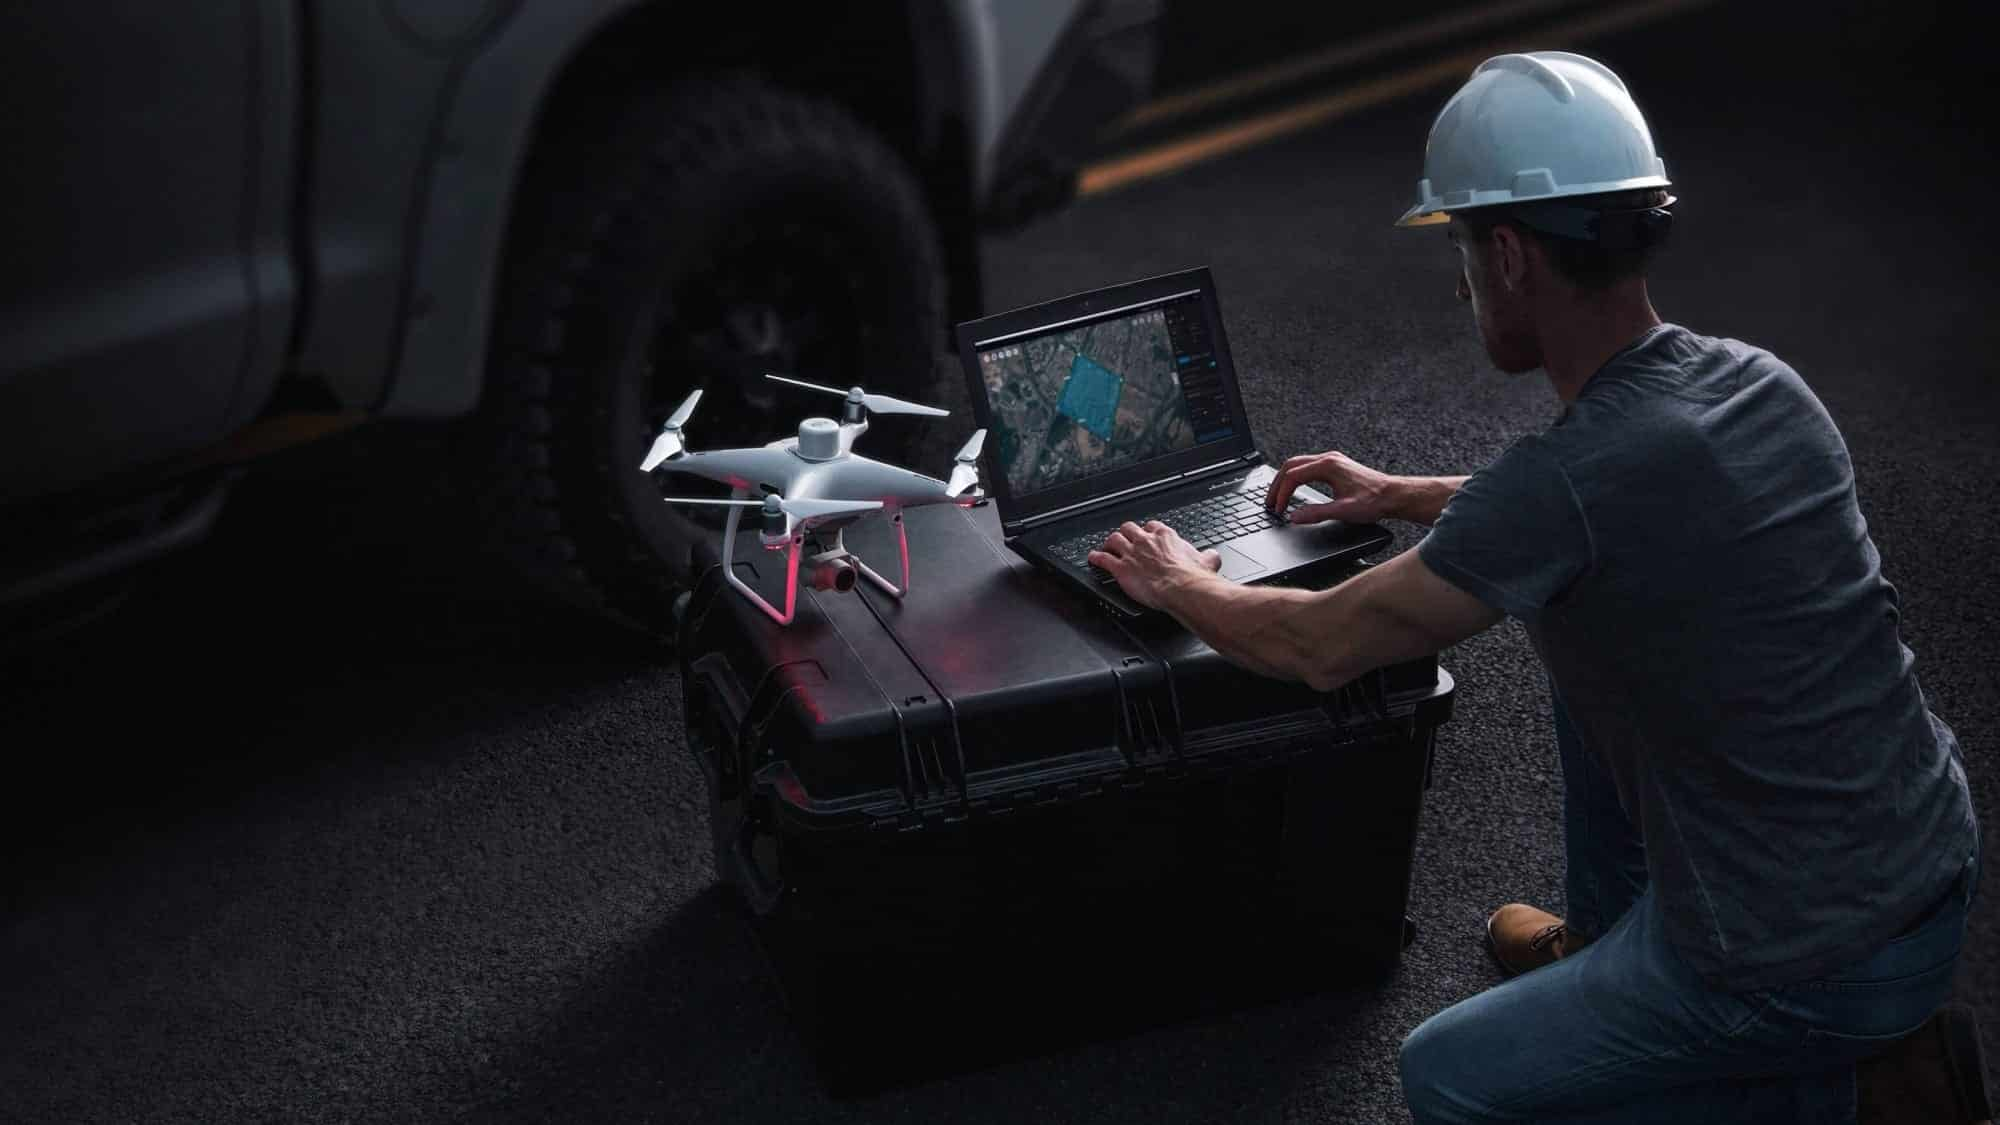 DJI Terra launches a new Electricity License